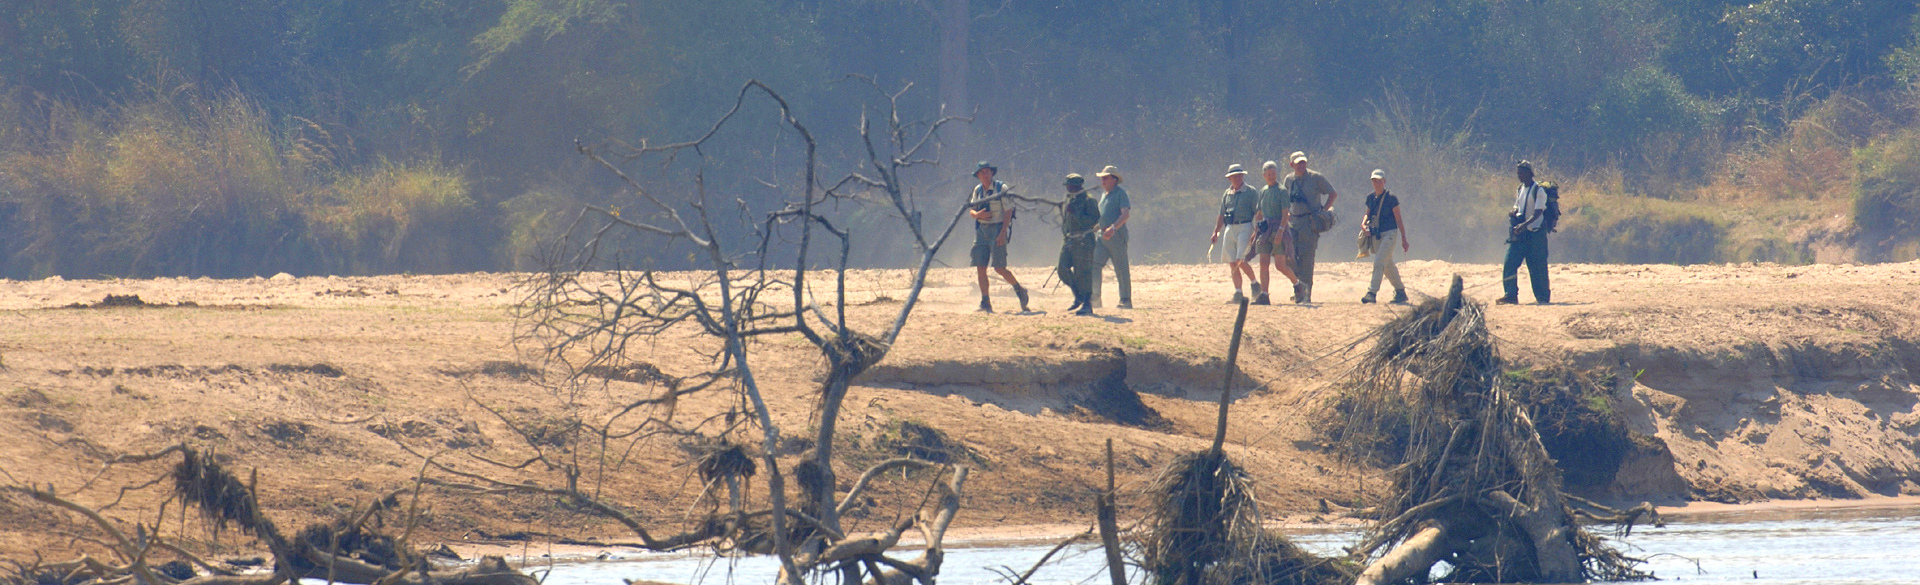 Wild walking in the North Luangwa with John Coppinger